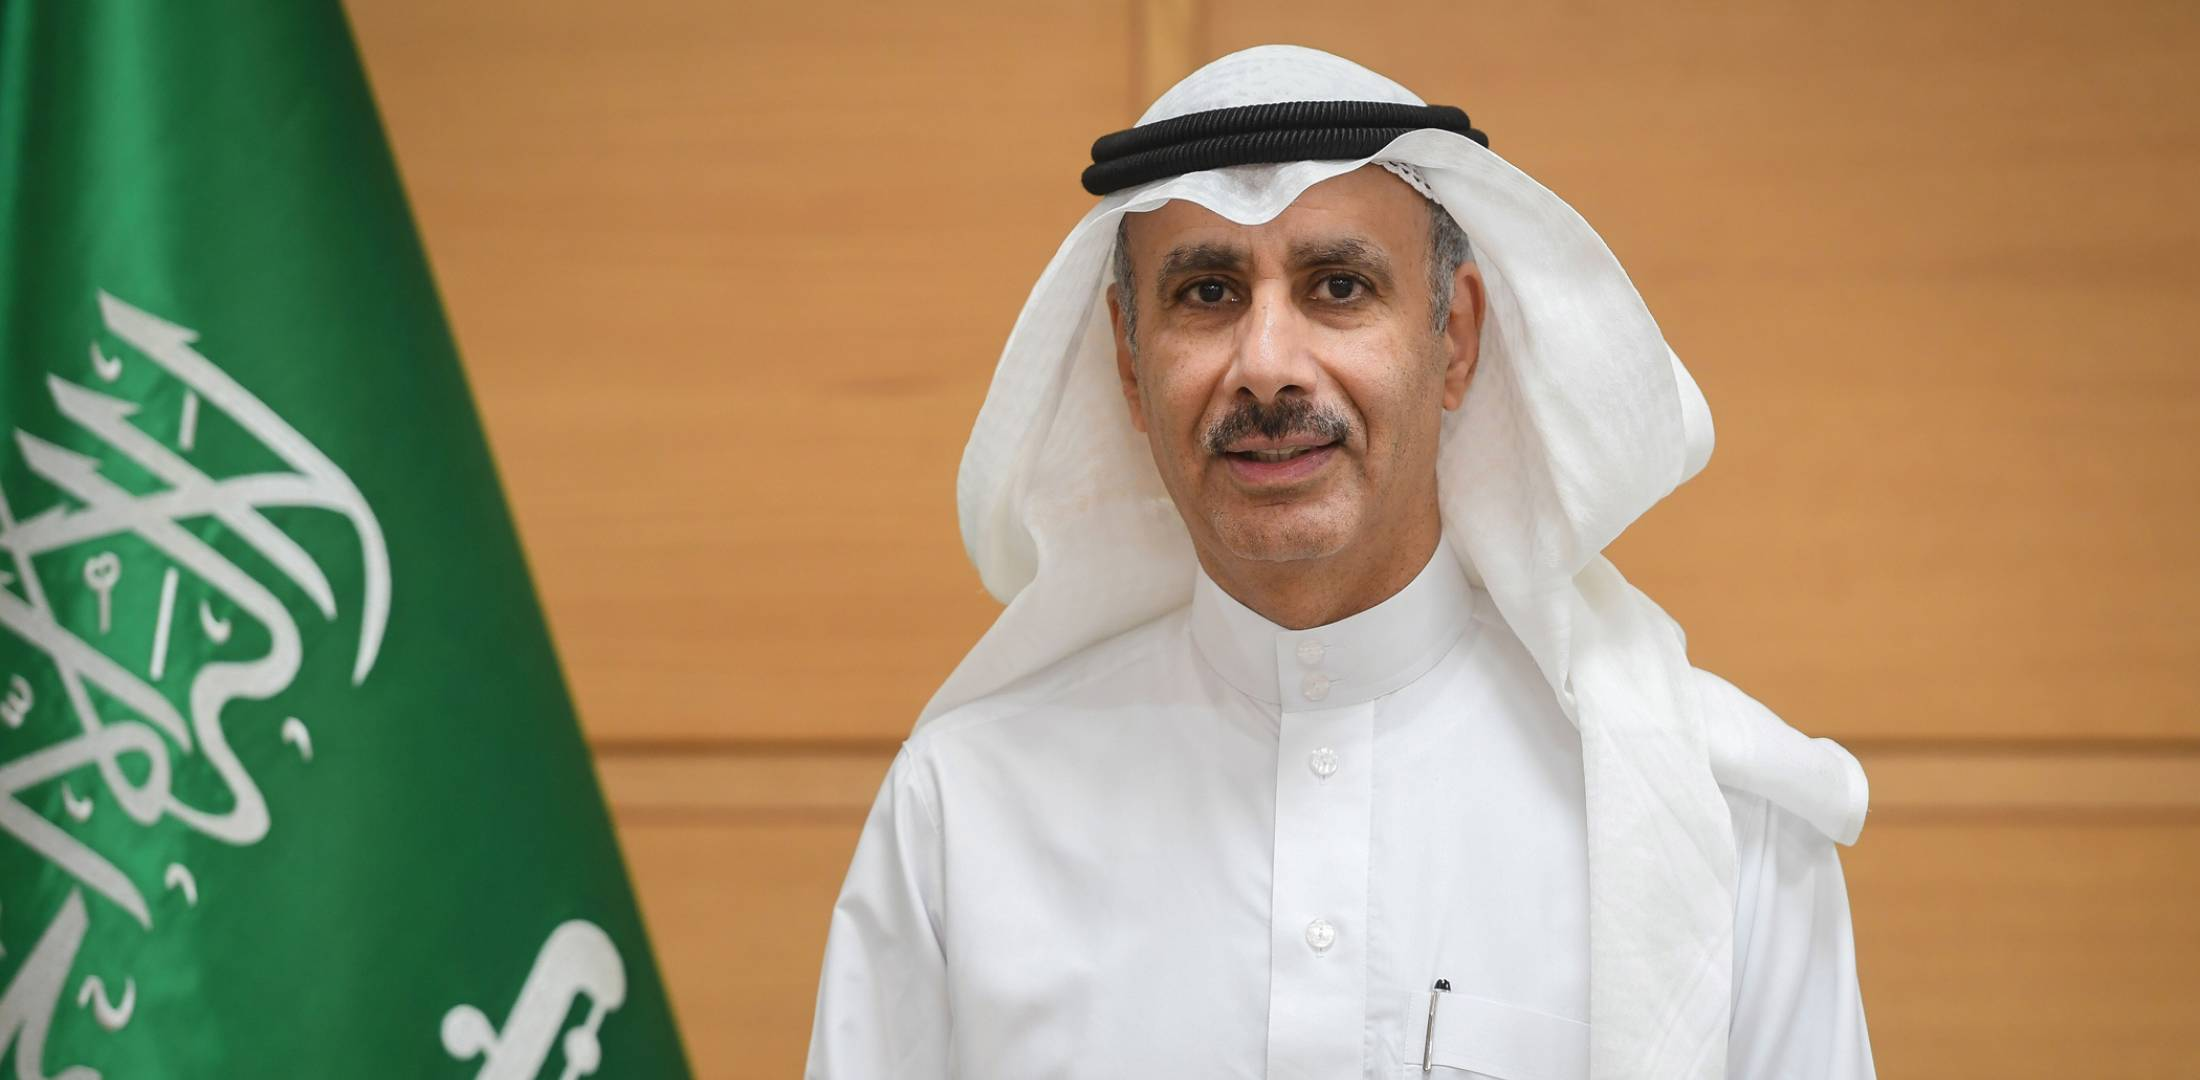 Governor of GAMI, Ahmed Al-Ohali